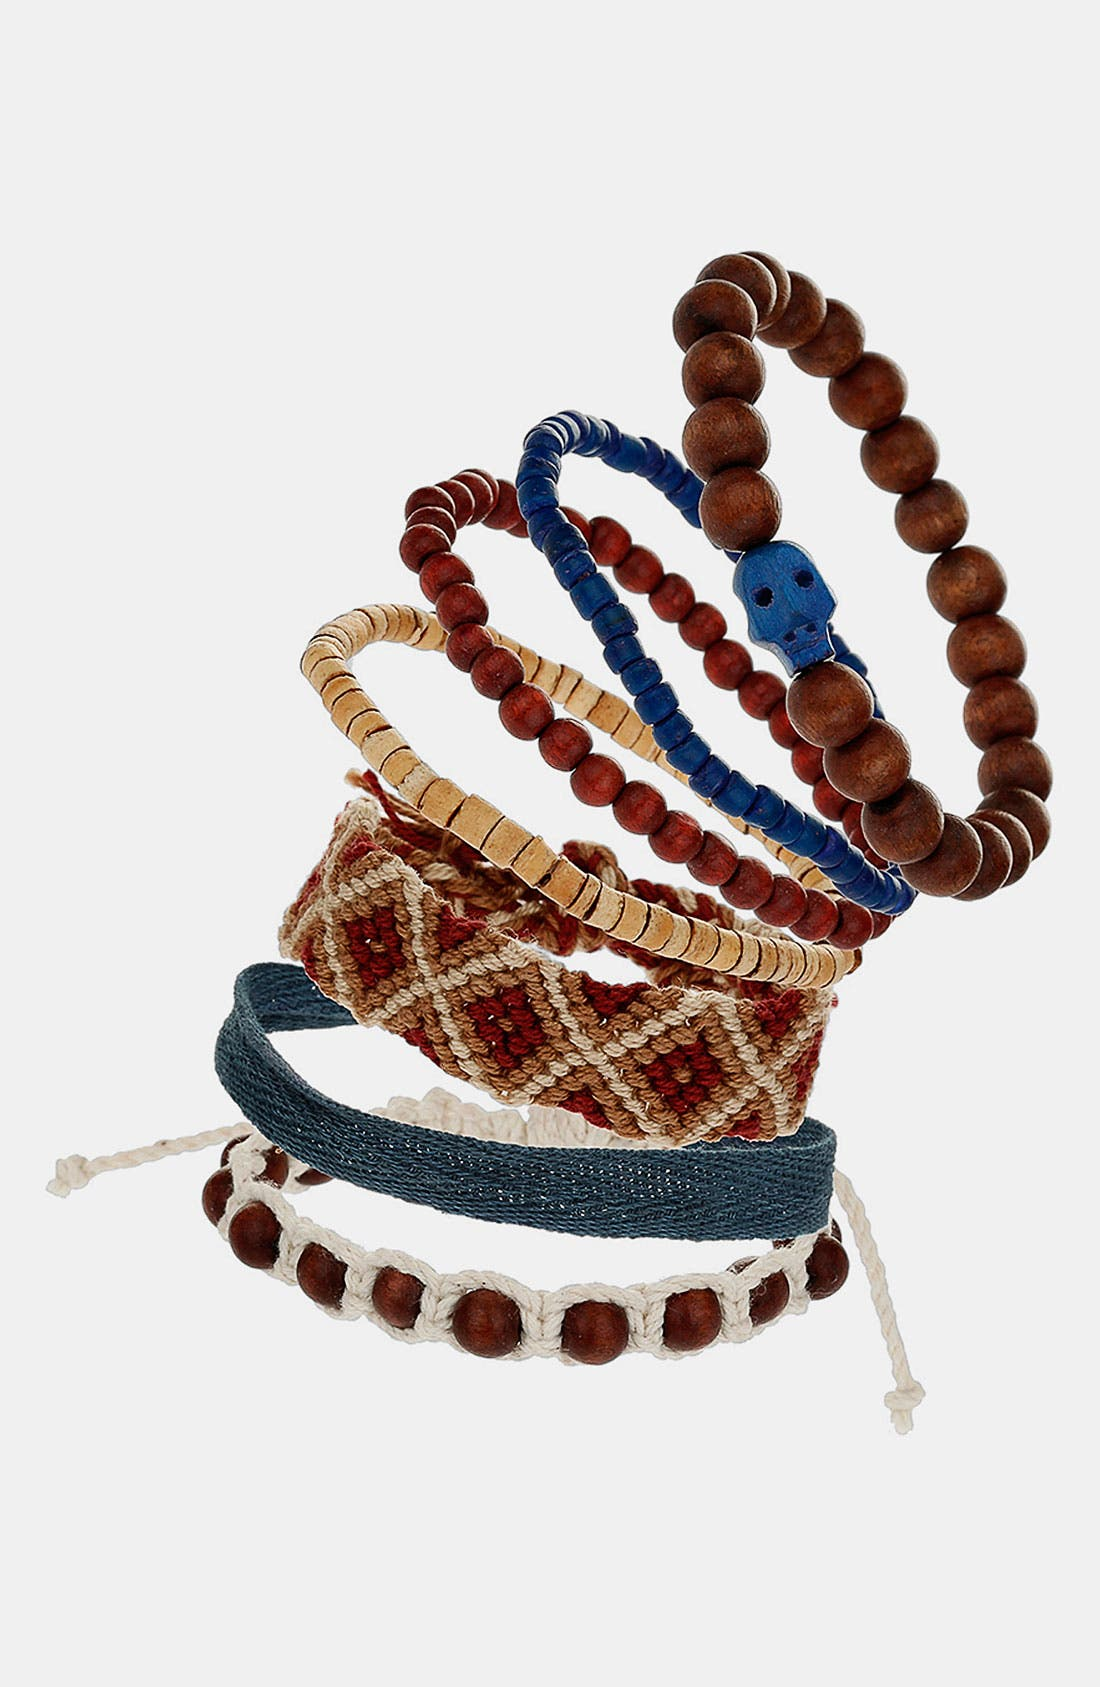 Alternate Image 1 Selected - Topman 'Trellick' Mixed Bracelets (Set of 7)